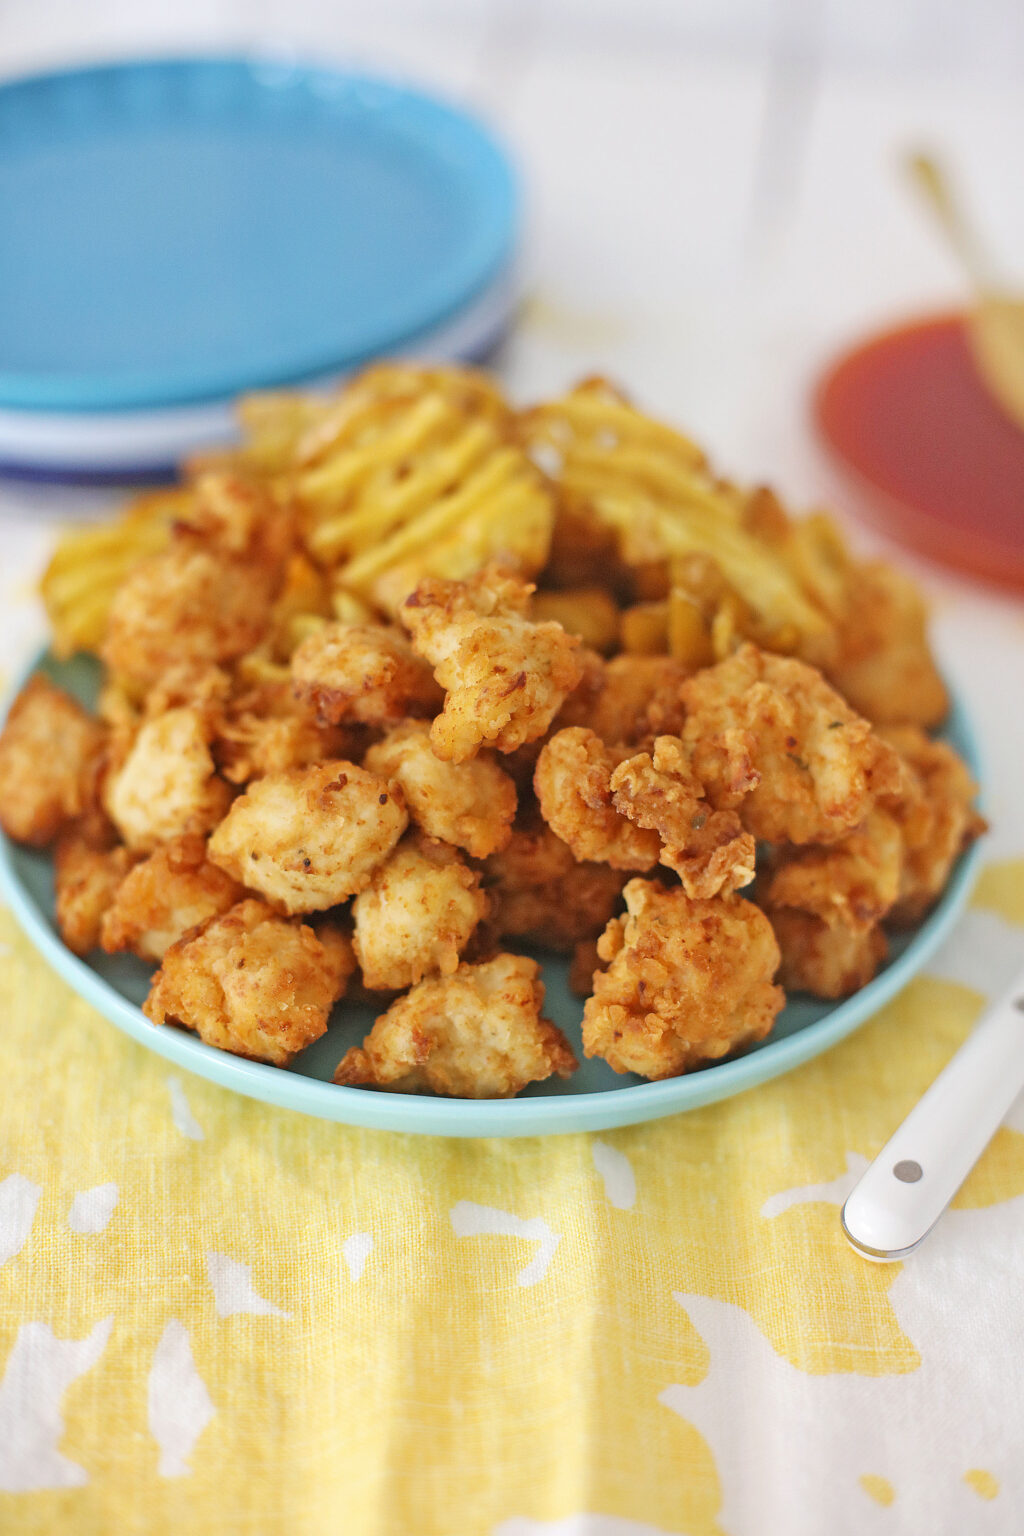 homemade chick-fil-a nuggets on a blue plate with a side of waffle fries